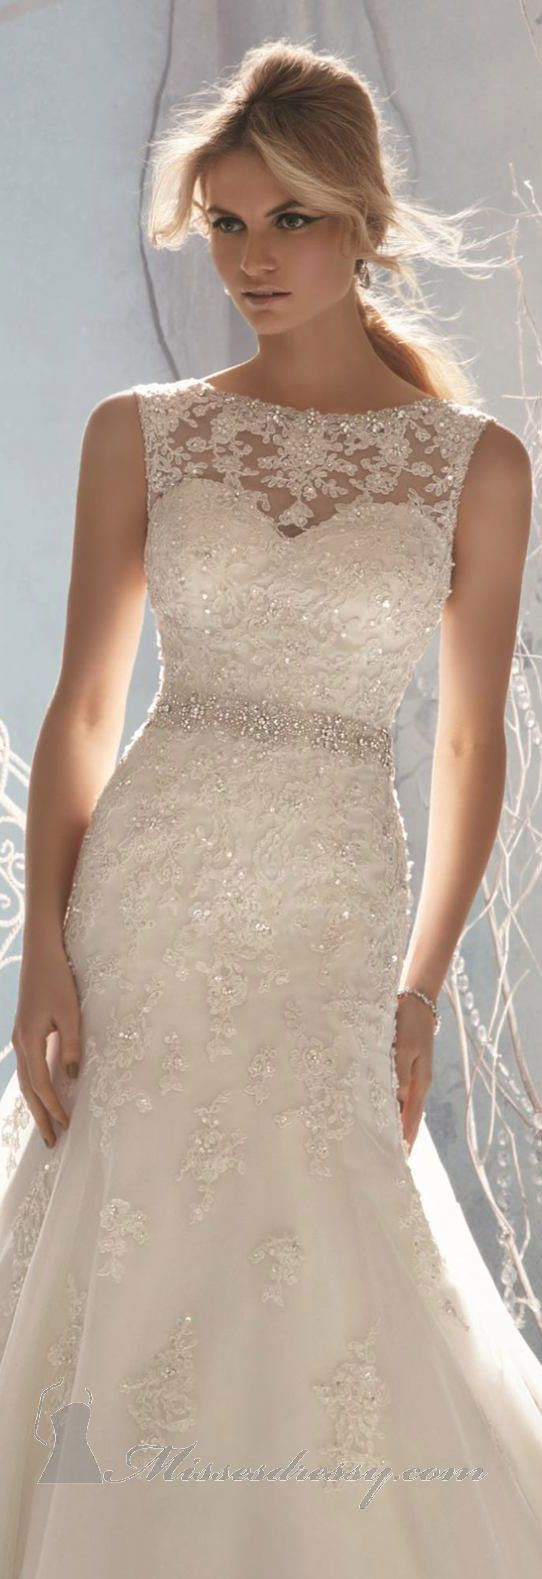 Beaded Sleeveless Gown by Bridal by Mori Lee <3